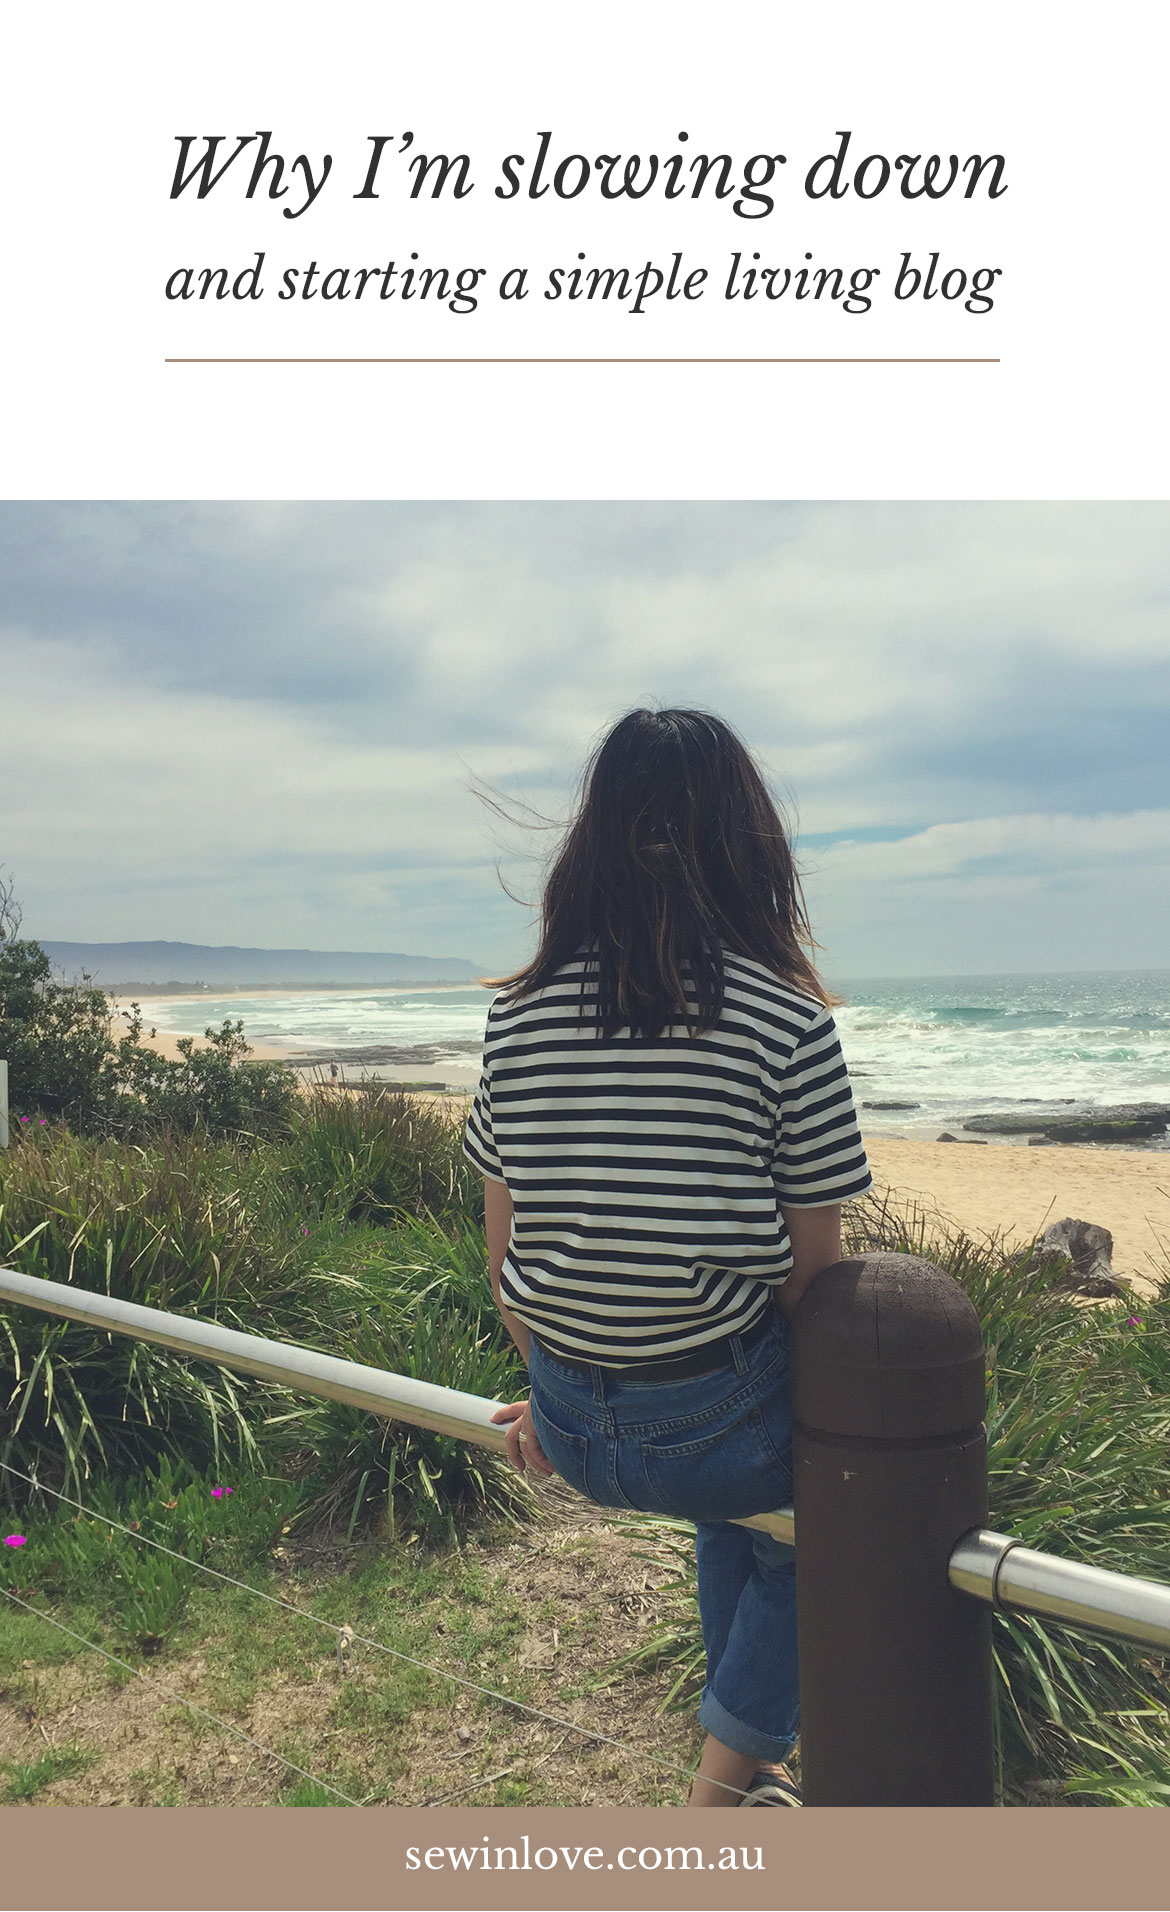 Simple Living Blog - Why I'm slowing down, re-evaluating my priorities and pivoting my blog to focus on slow, sustainable living. https://www.sewinlove.com.au/